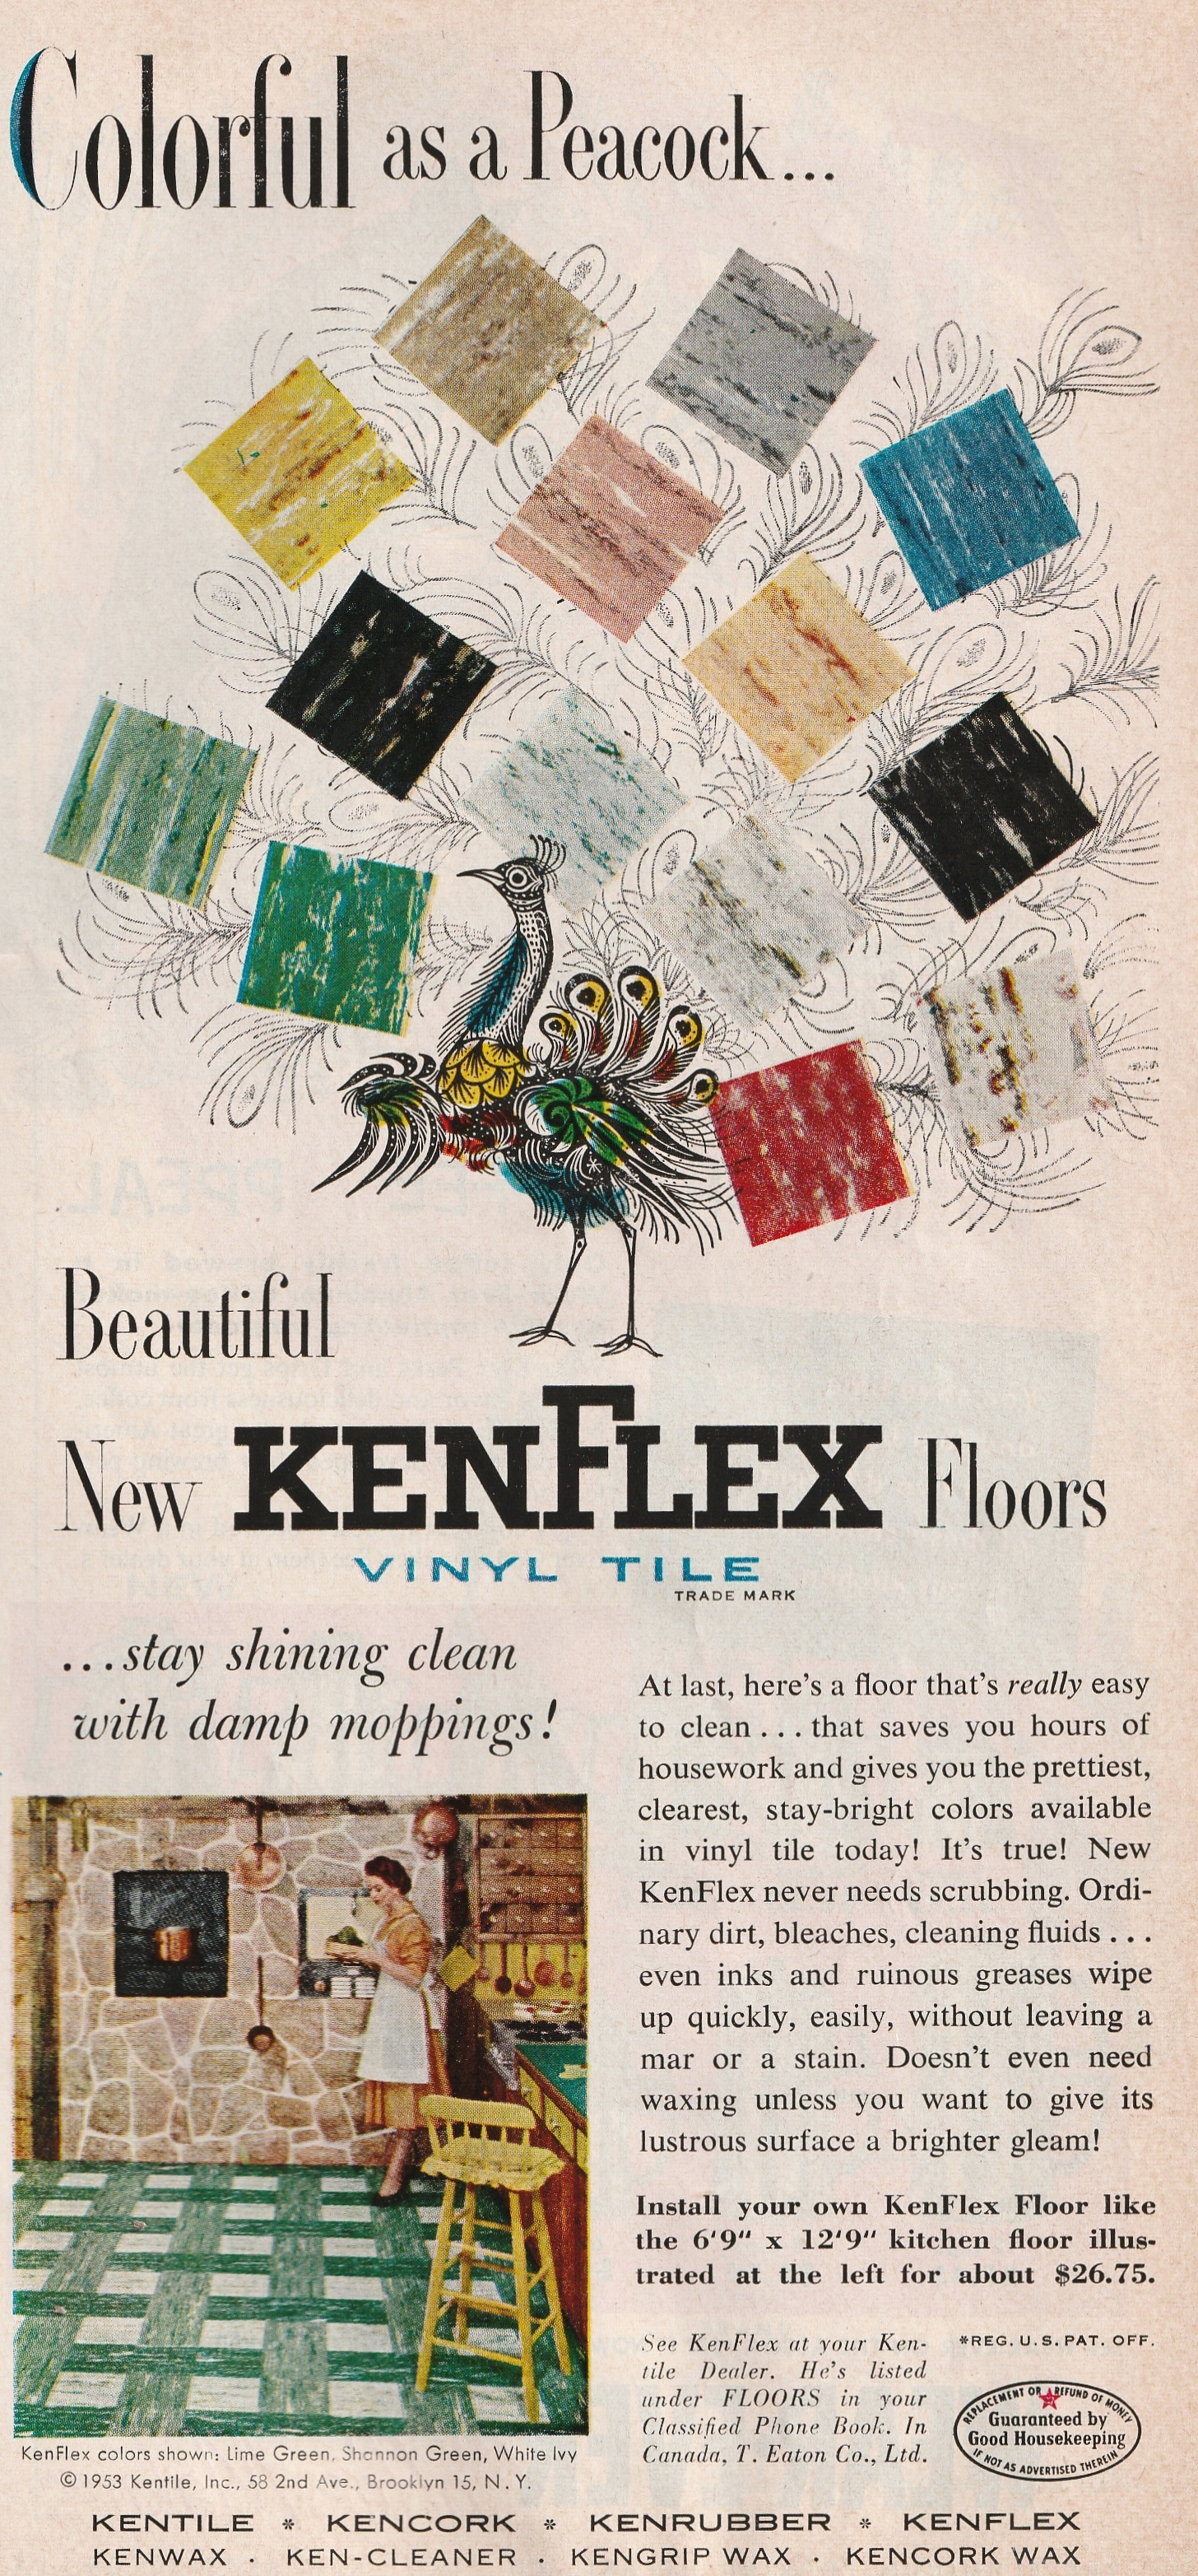 KenFlex - published in Good Housekeeping - March 1954